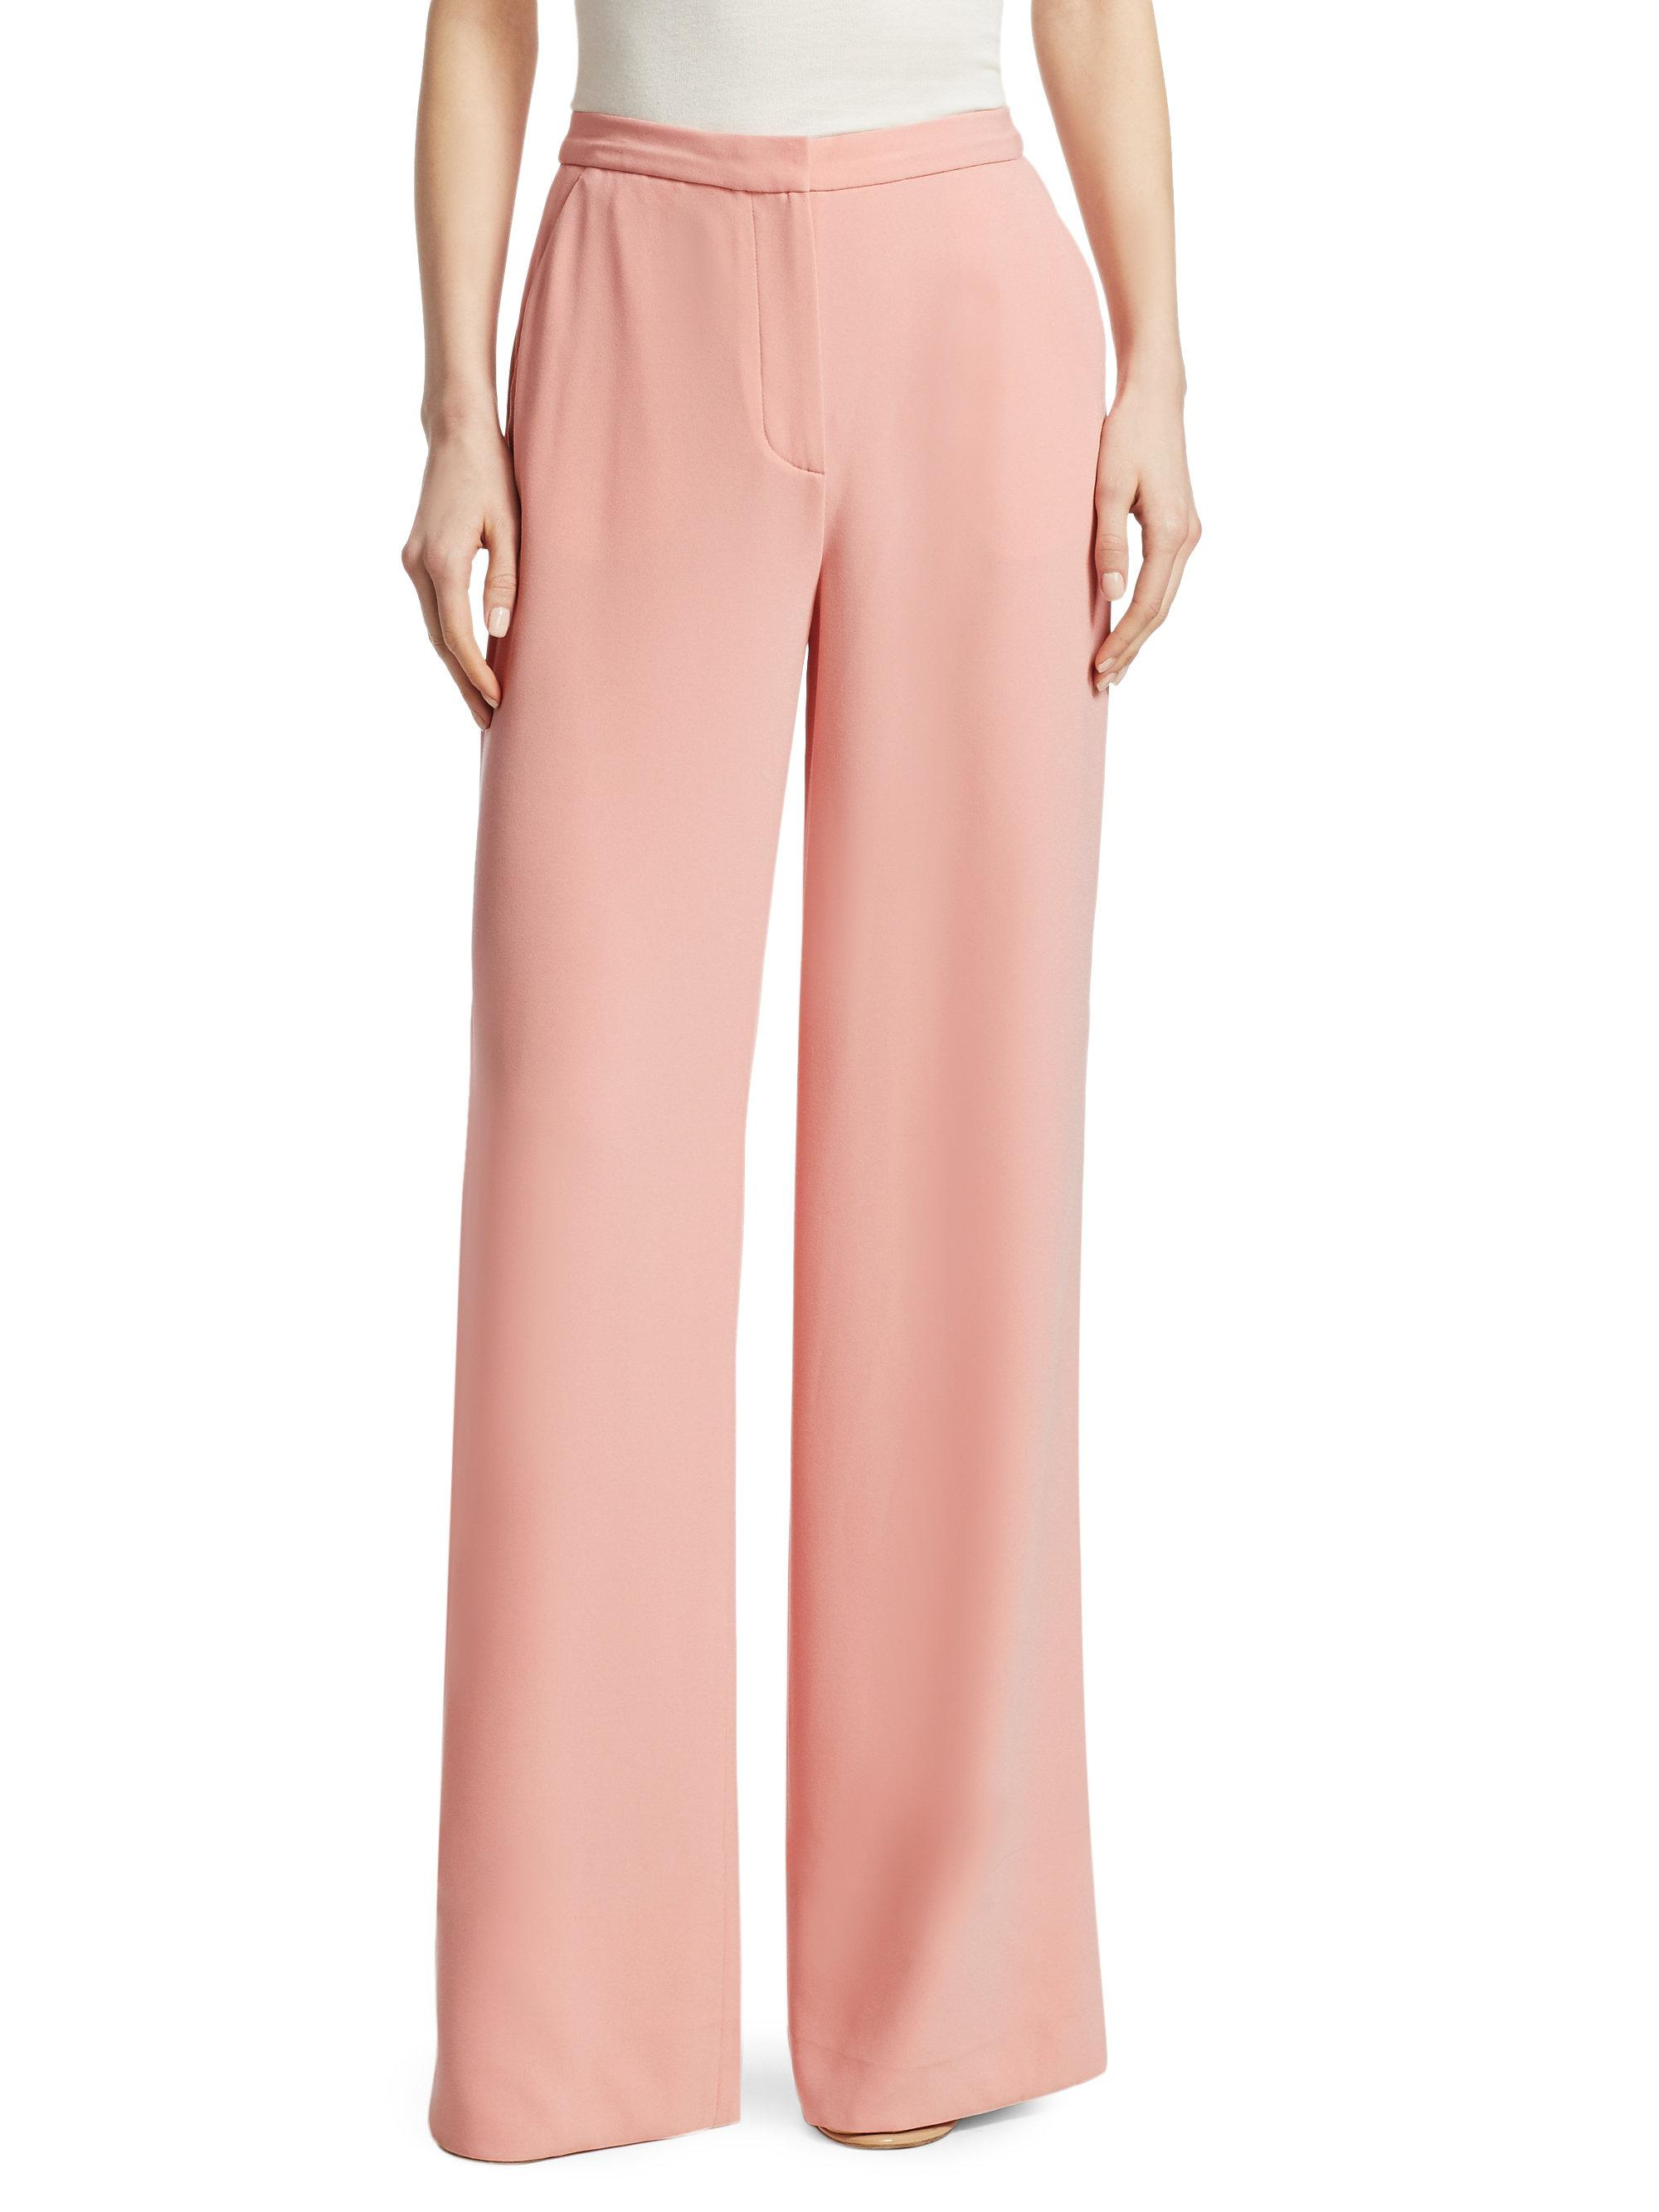 Outlet Low Price Free Shipping For Sale wide leg trousers - Pink & Purple Elizabeth & James Cheap Footlocker Pictures Deals Online Sale High Quality yTQFoi6